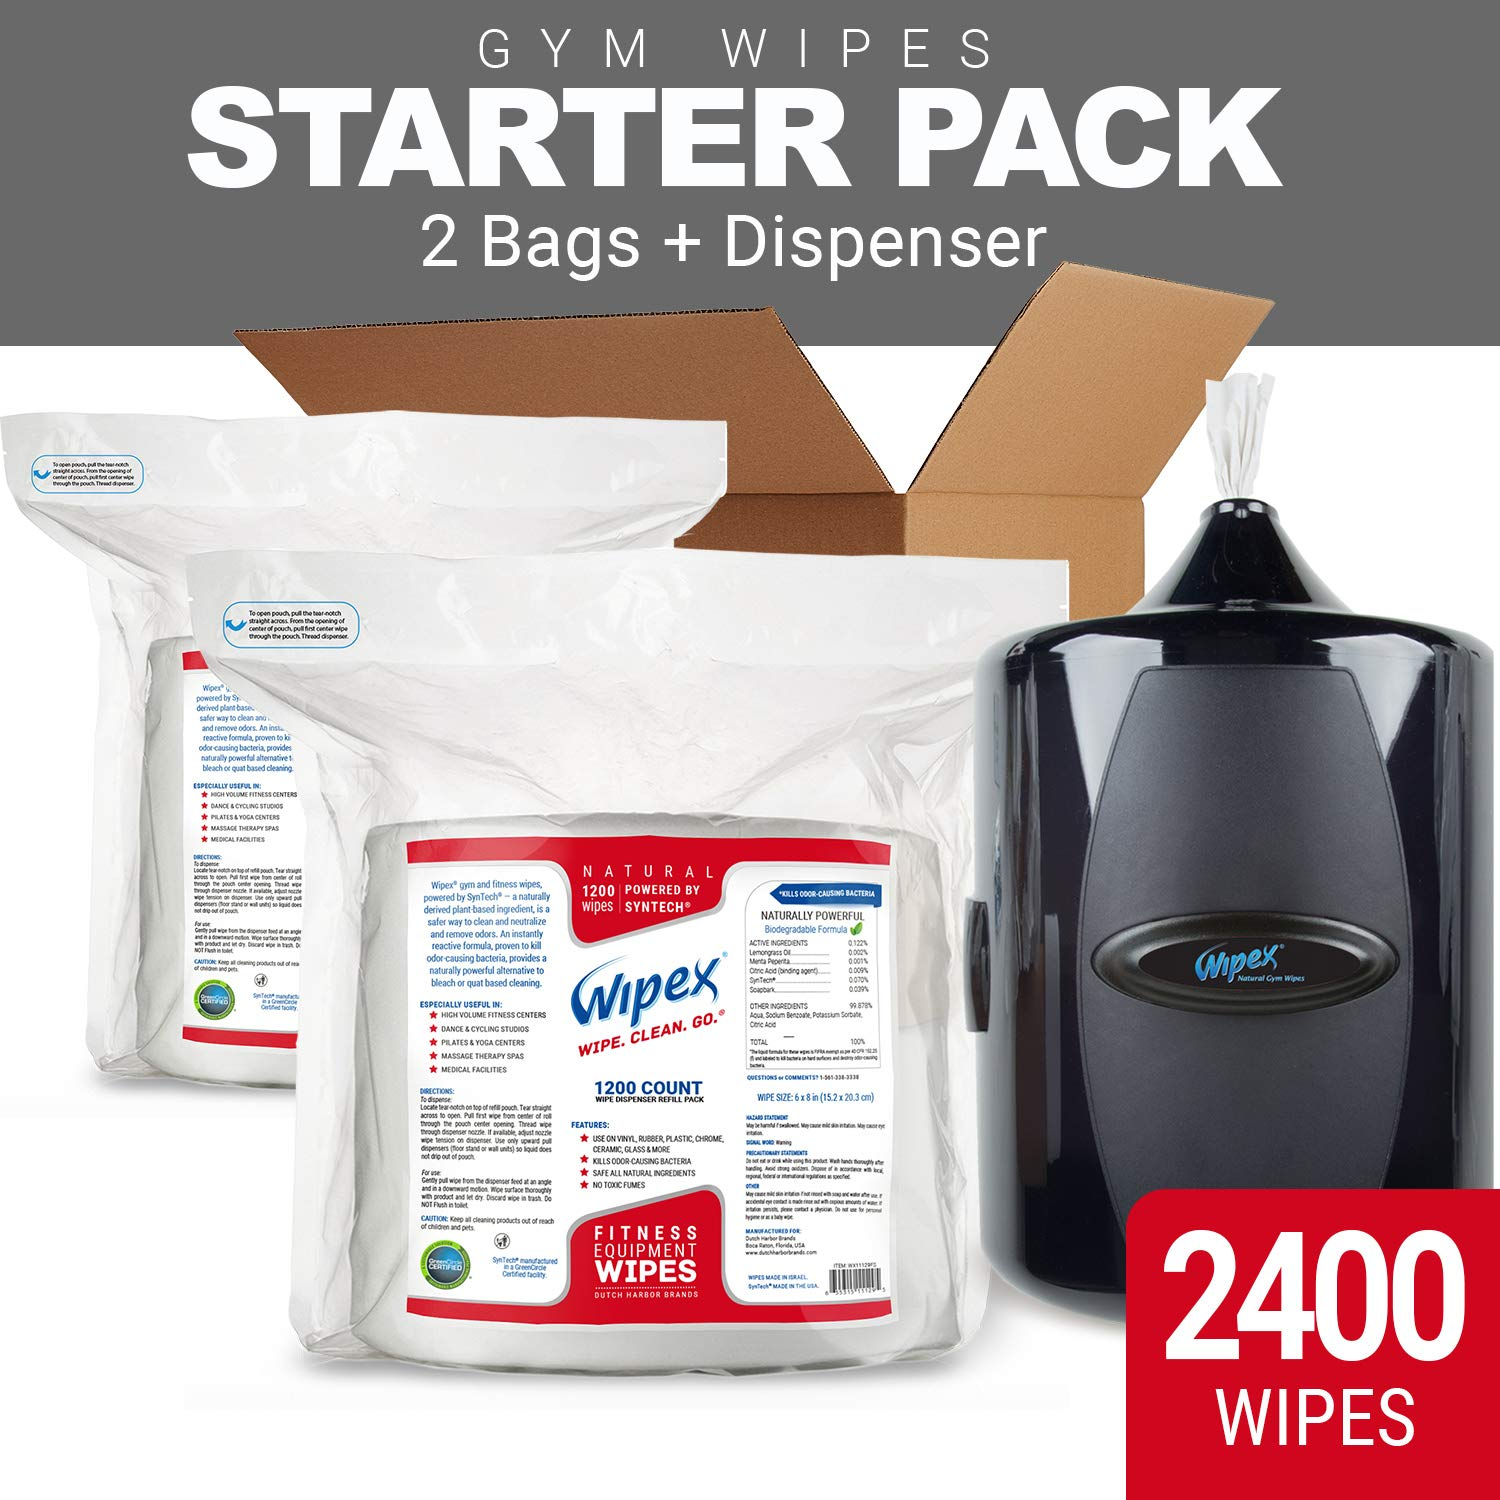 Gym Wipe Starter Pack: Get a Upward-Pull Wall Dispenser Plus (2 X 1200ct Refills) Natural Gym Equipment Wipes Powered by SynTech for Dispensers, Kills Odor-Causing Bacteria, Unscented, Hypoallergenic